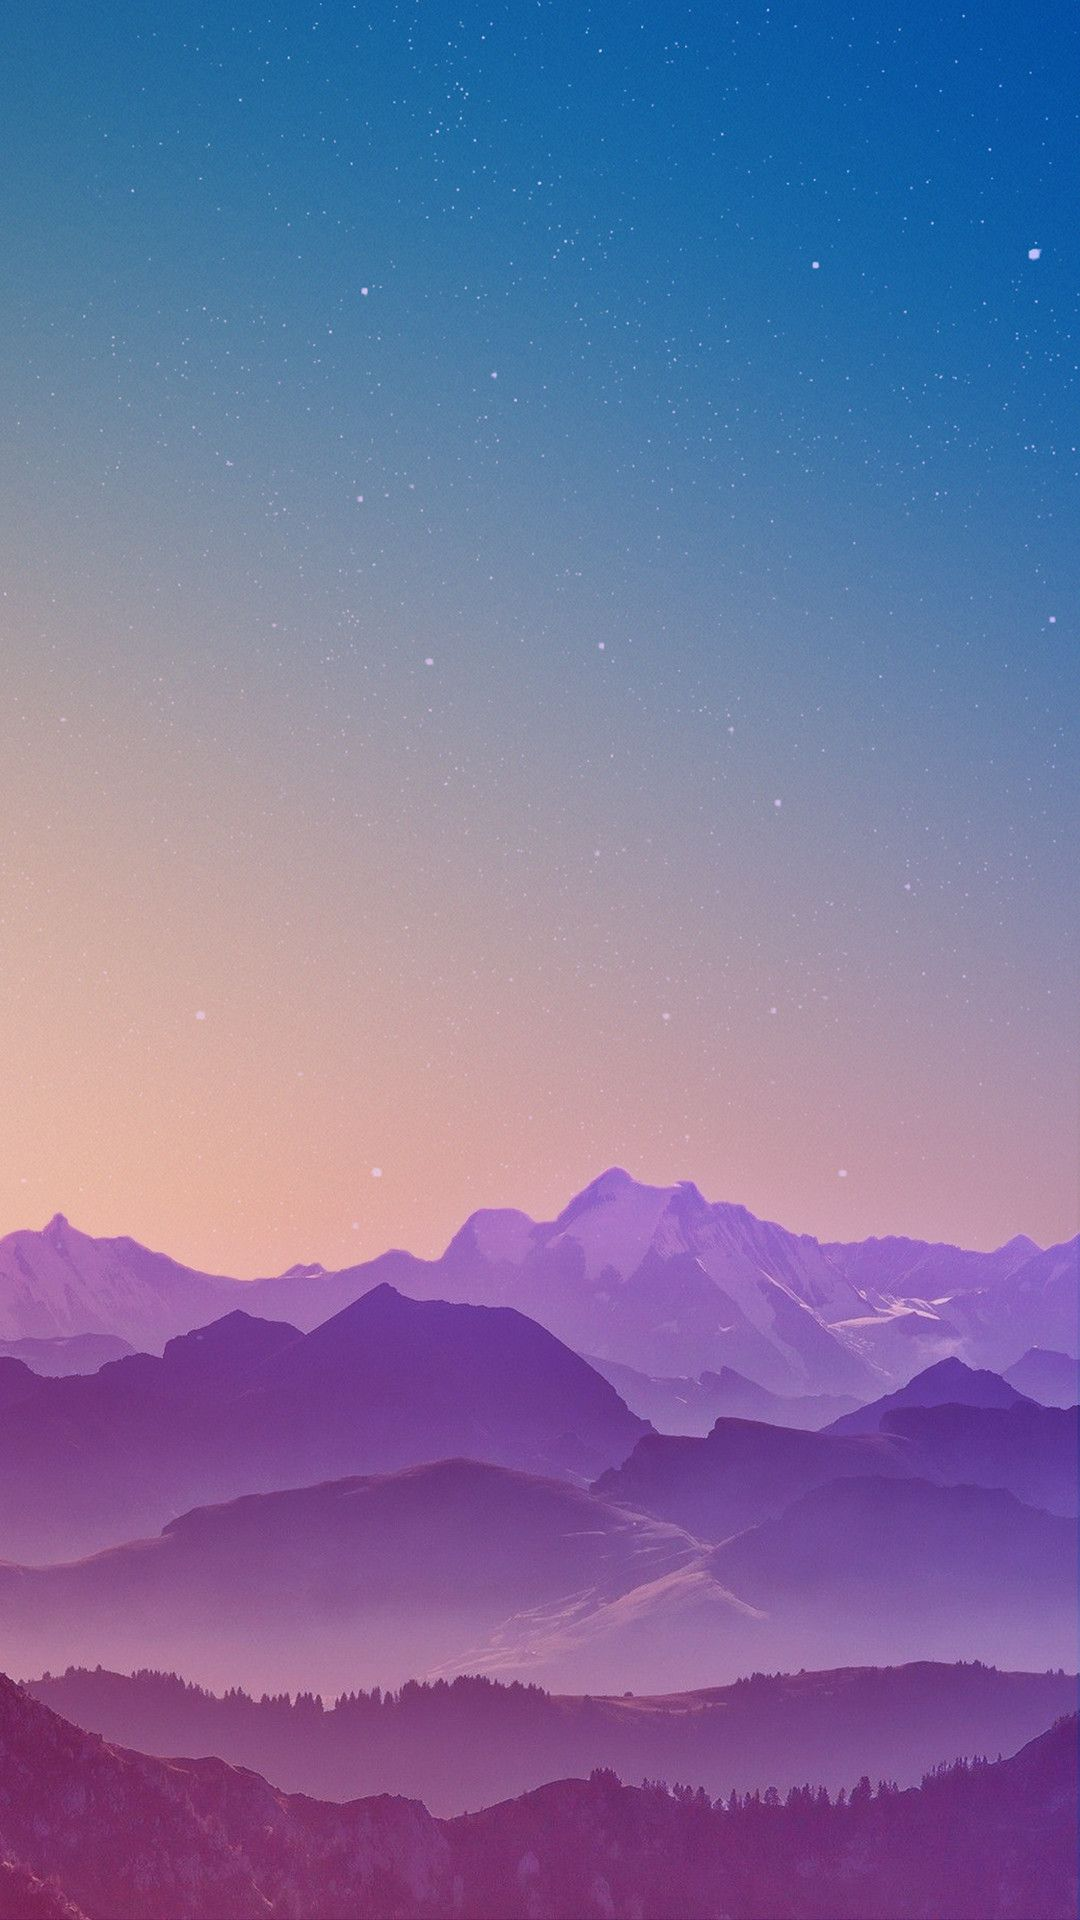 Oneplus Wallpapers 92 Images In 2020 Landscape Wallpaper Minimalist Wallpaper Phone Wallpaper